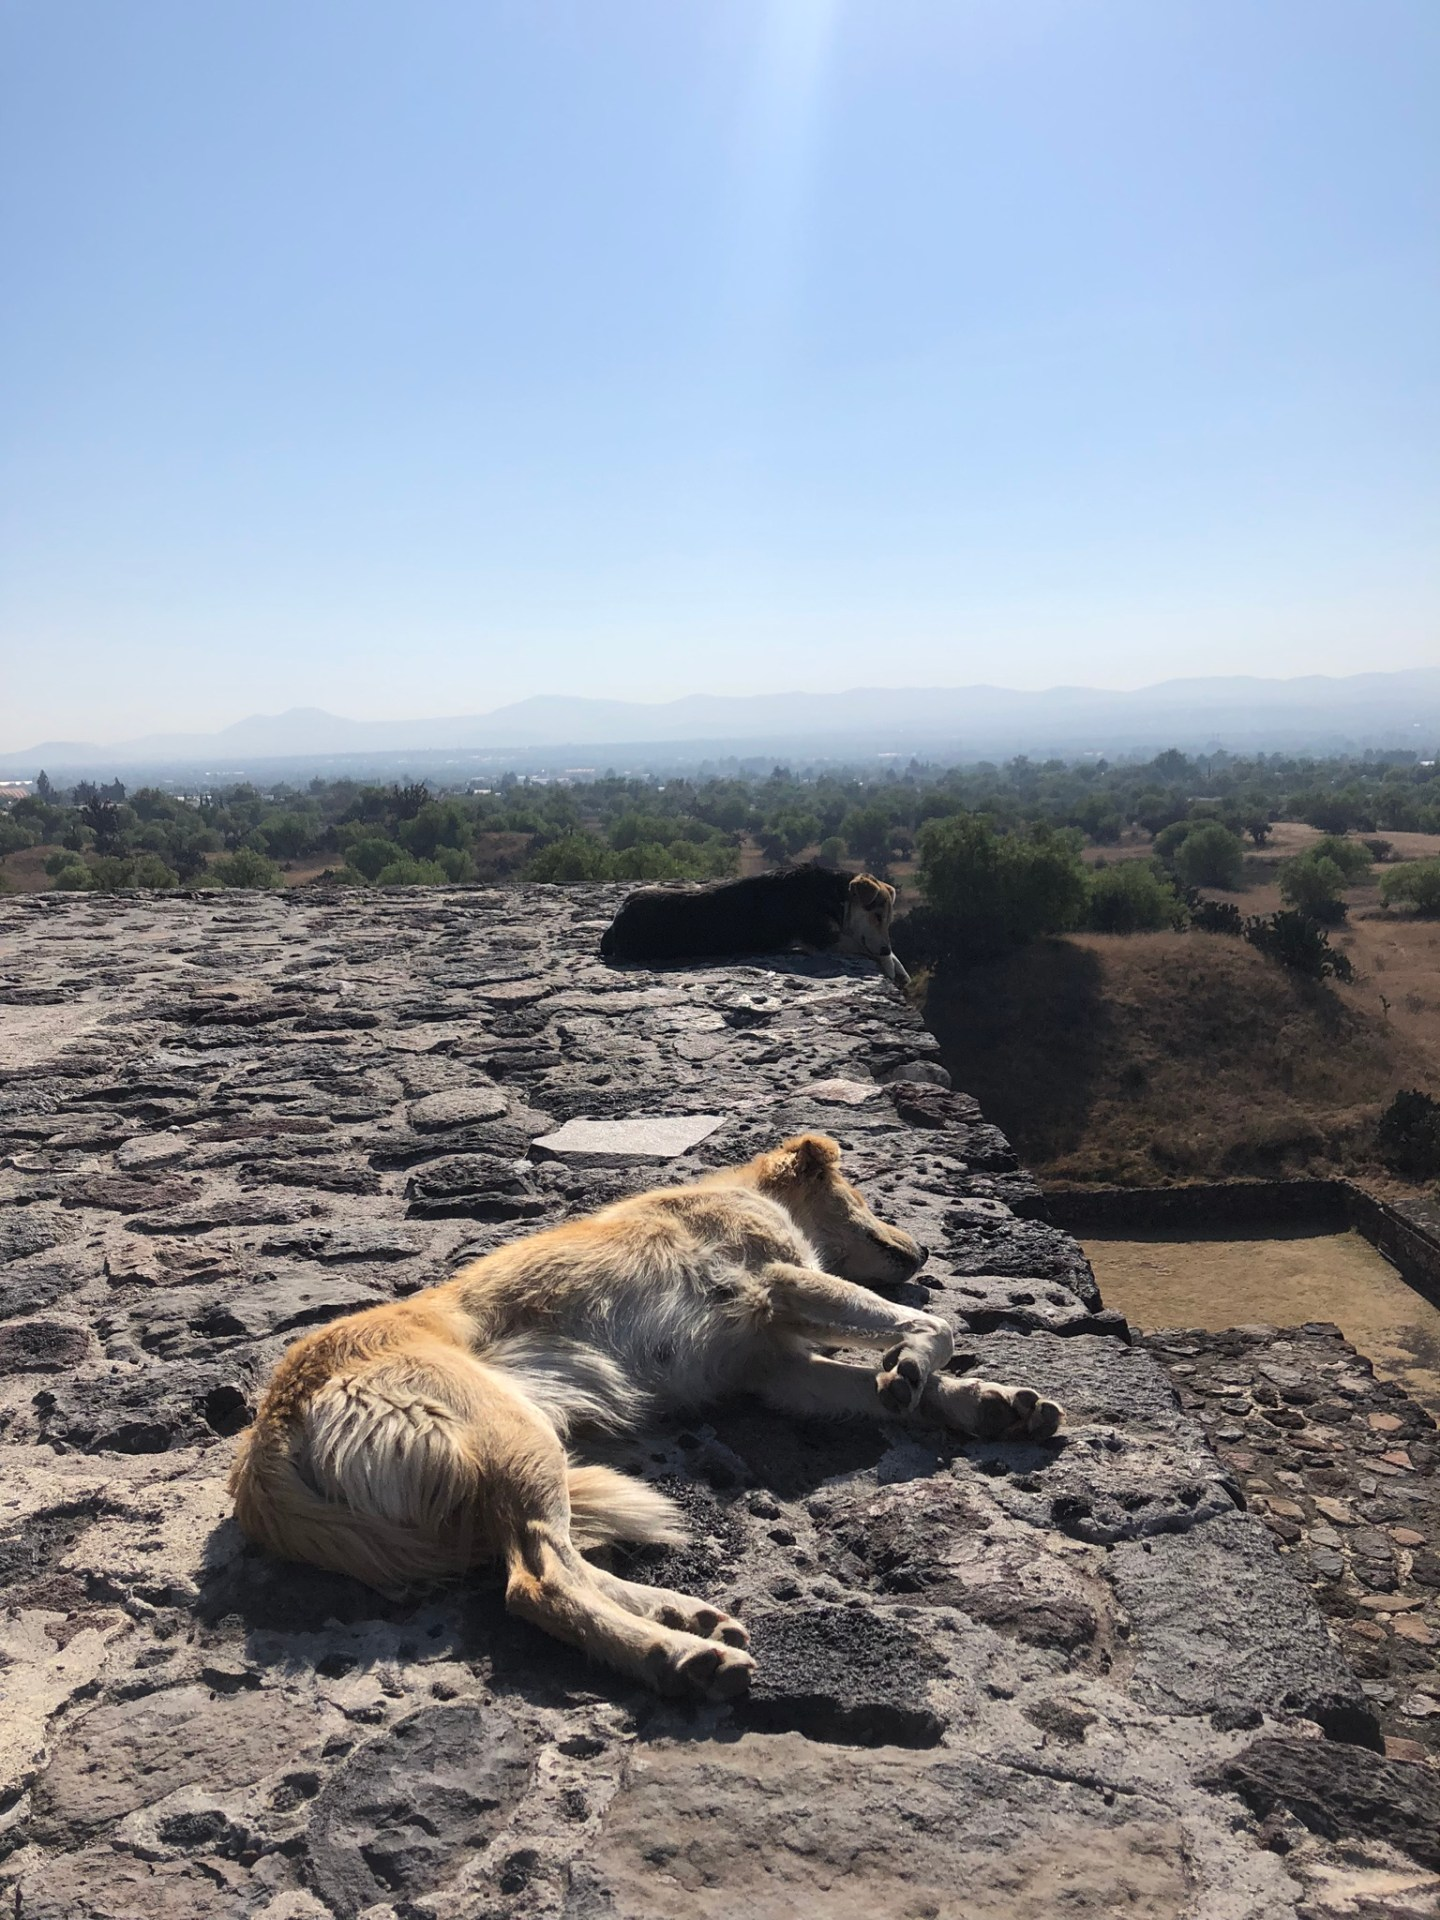 Dogs asleep in the sun on the Pyramid of the Moon